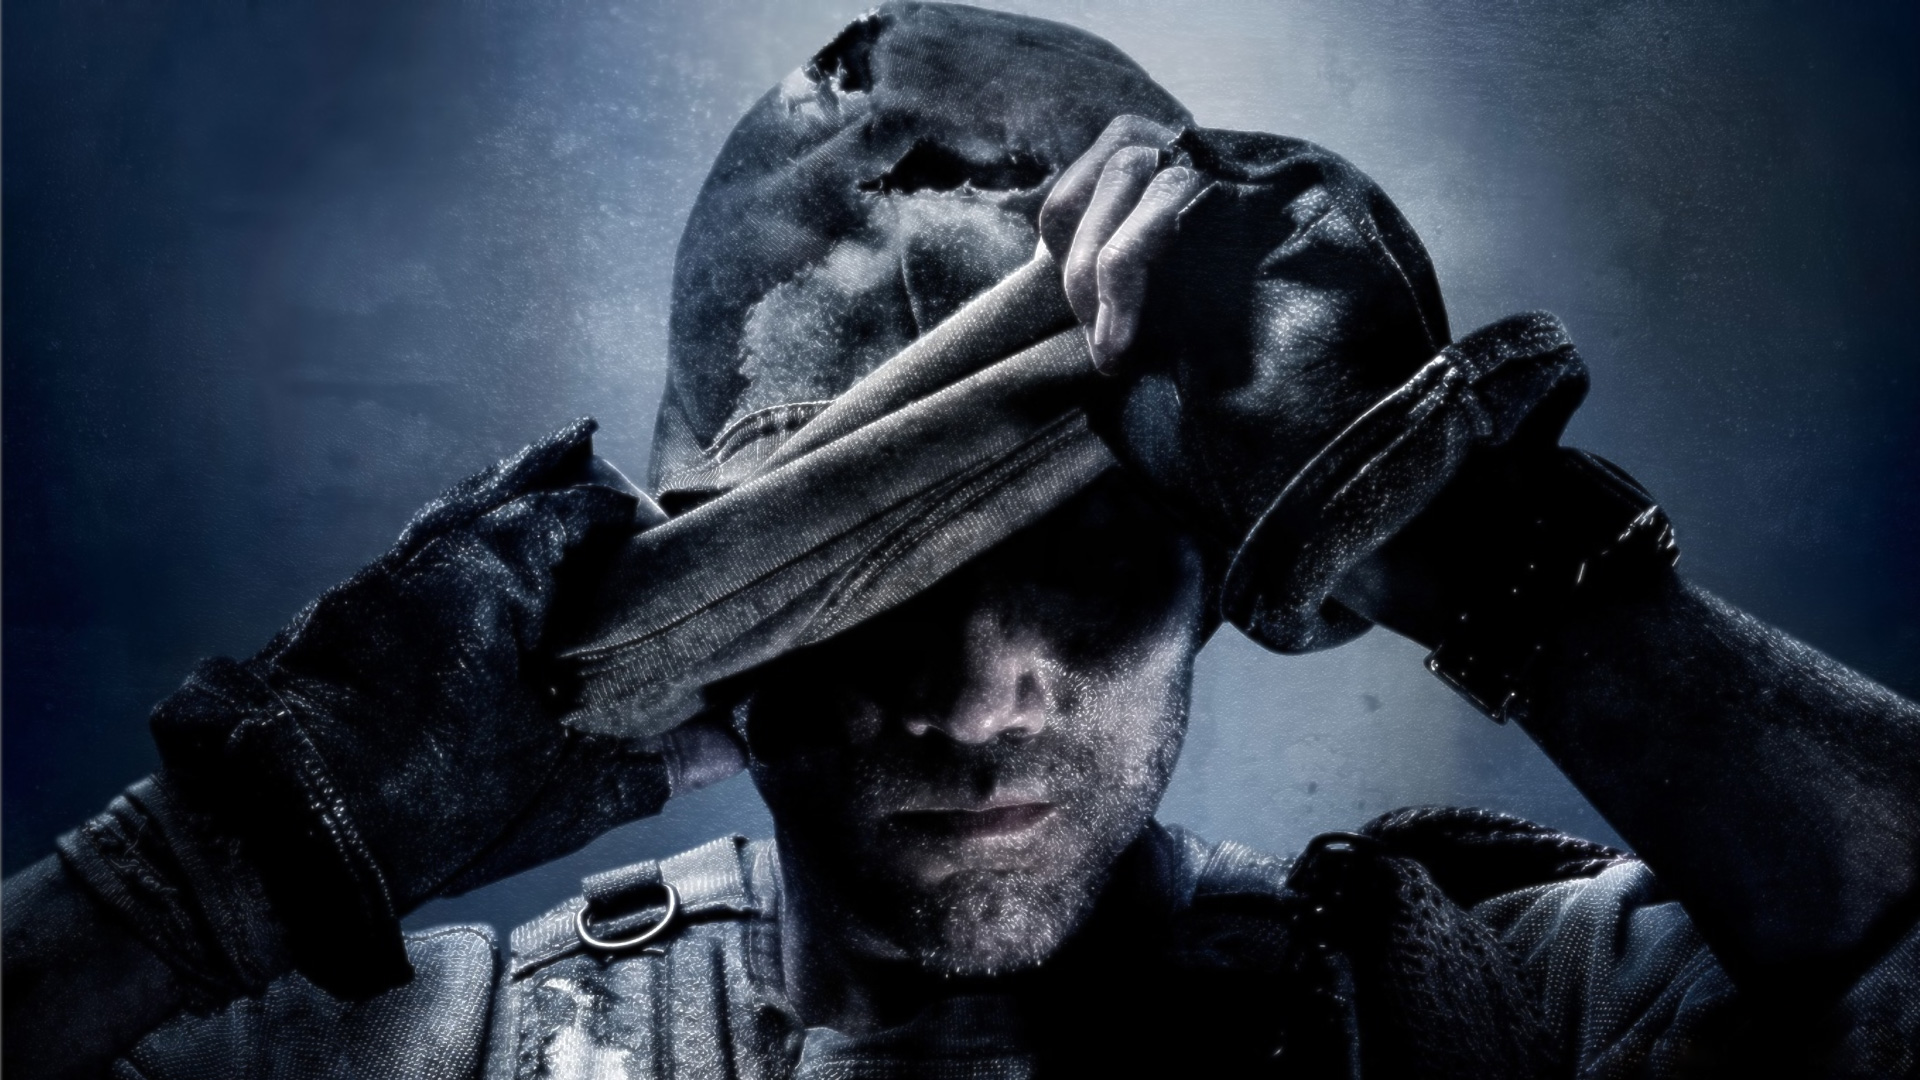 COD Ghosts HD Wallpapers | Call of Duty Ghosts | Call of ...